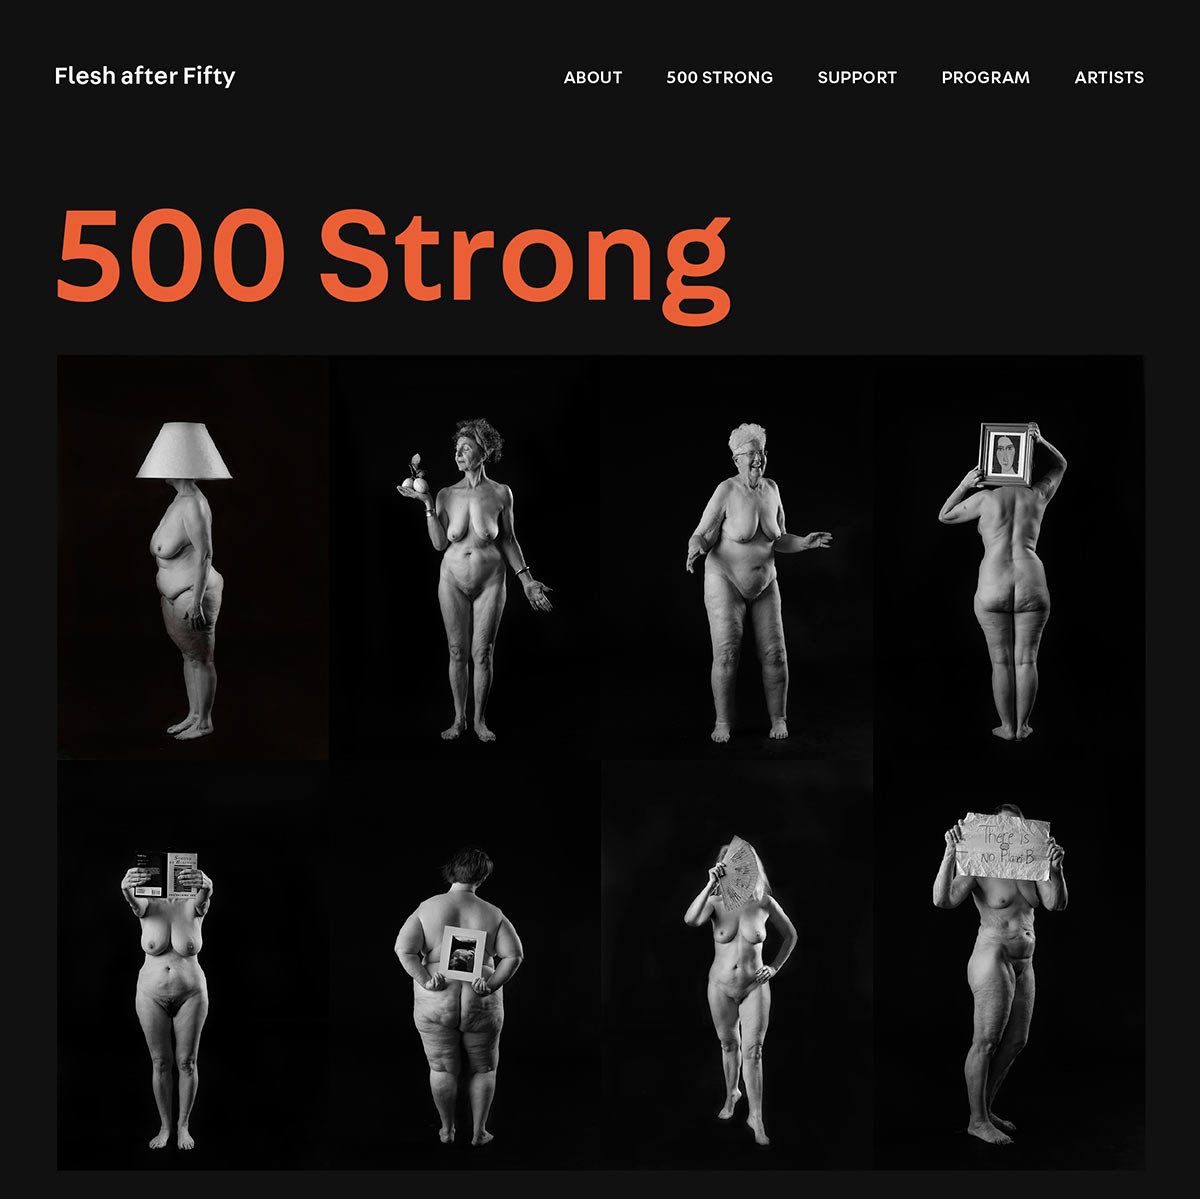 500 Strong